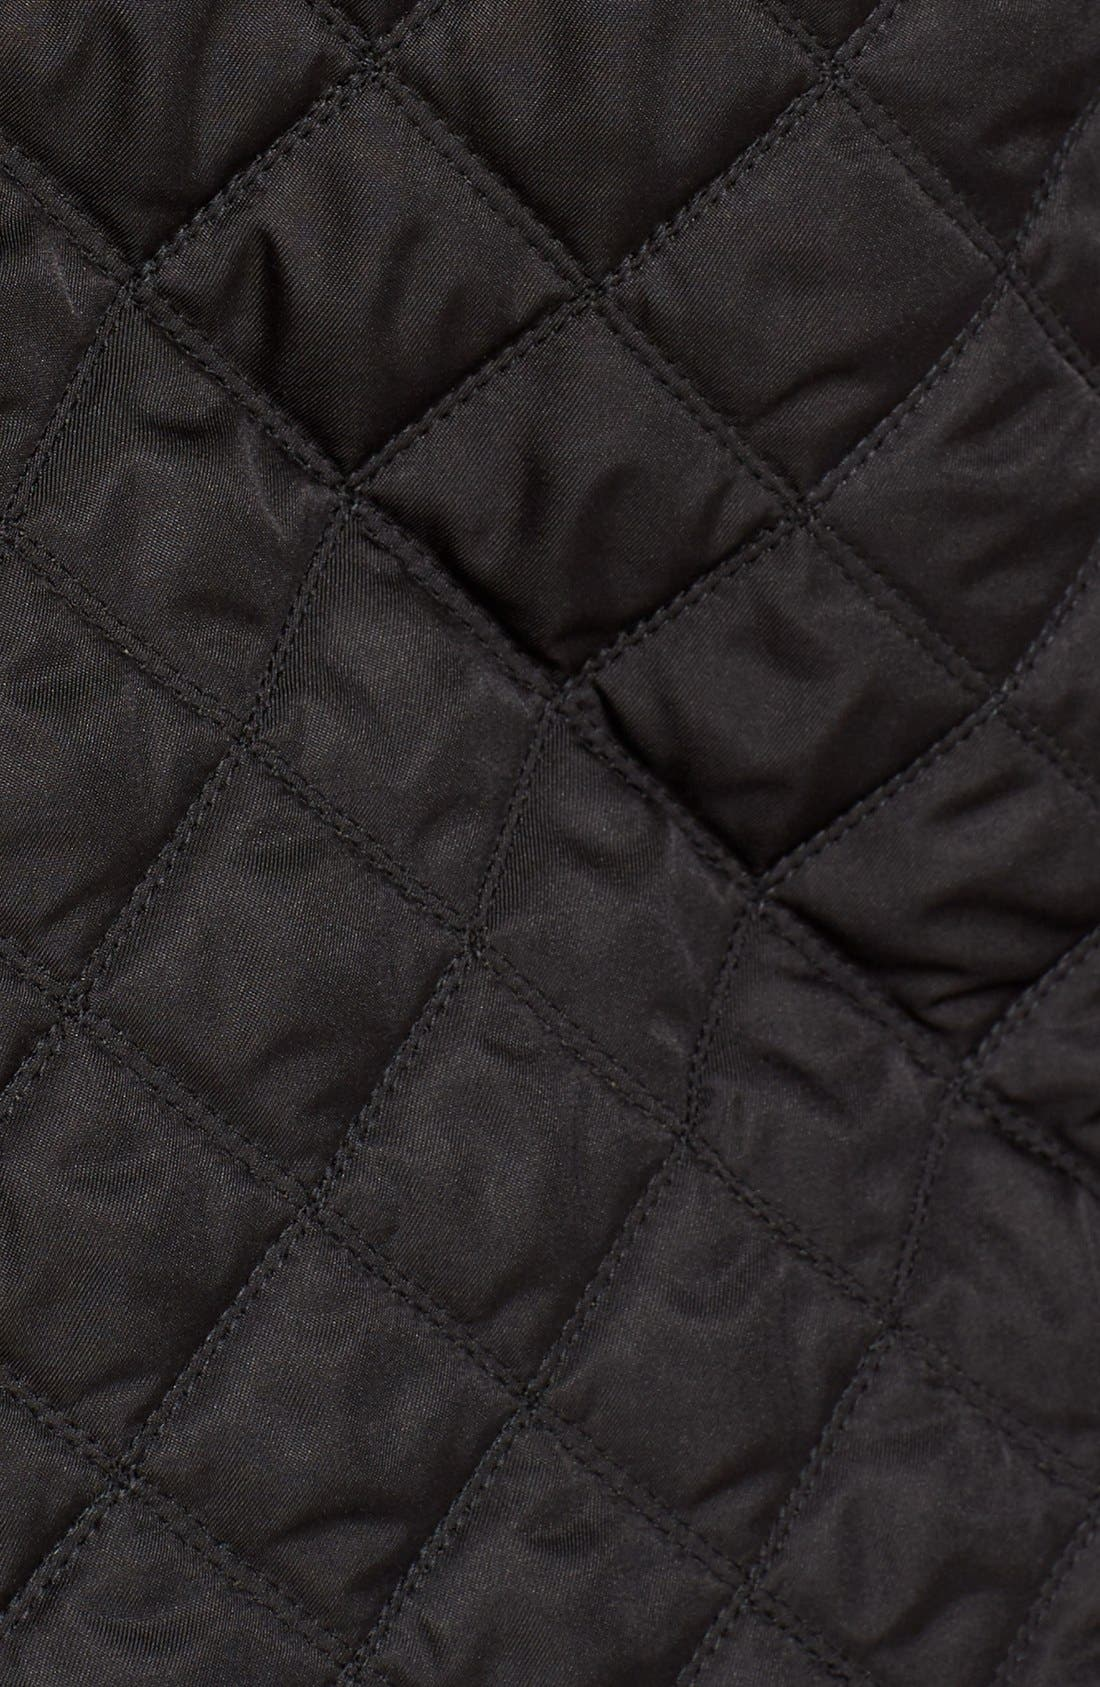 'Leightonbury' Quilted Hooded Jacket,                             Alternate thumbnail 3, color,                             001